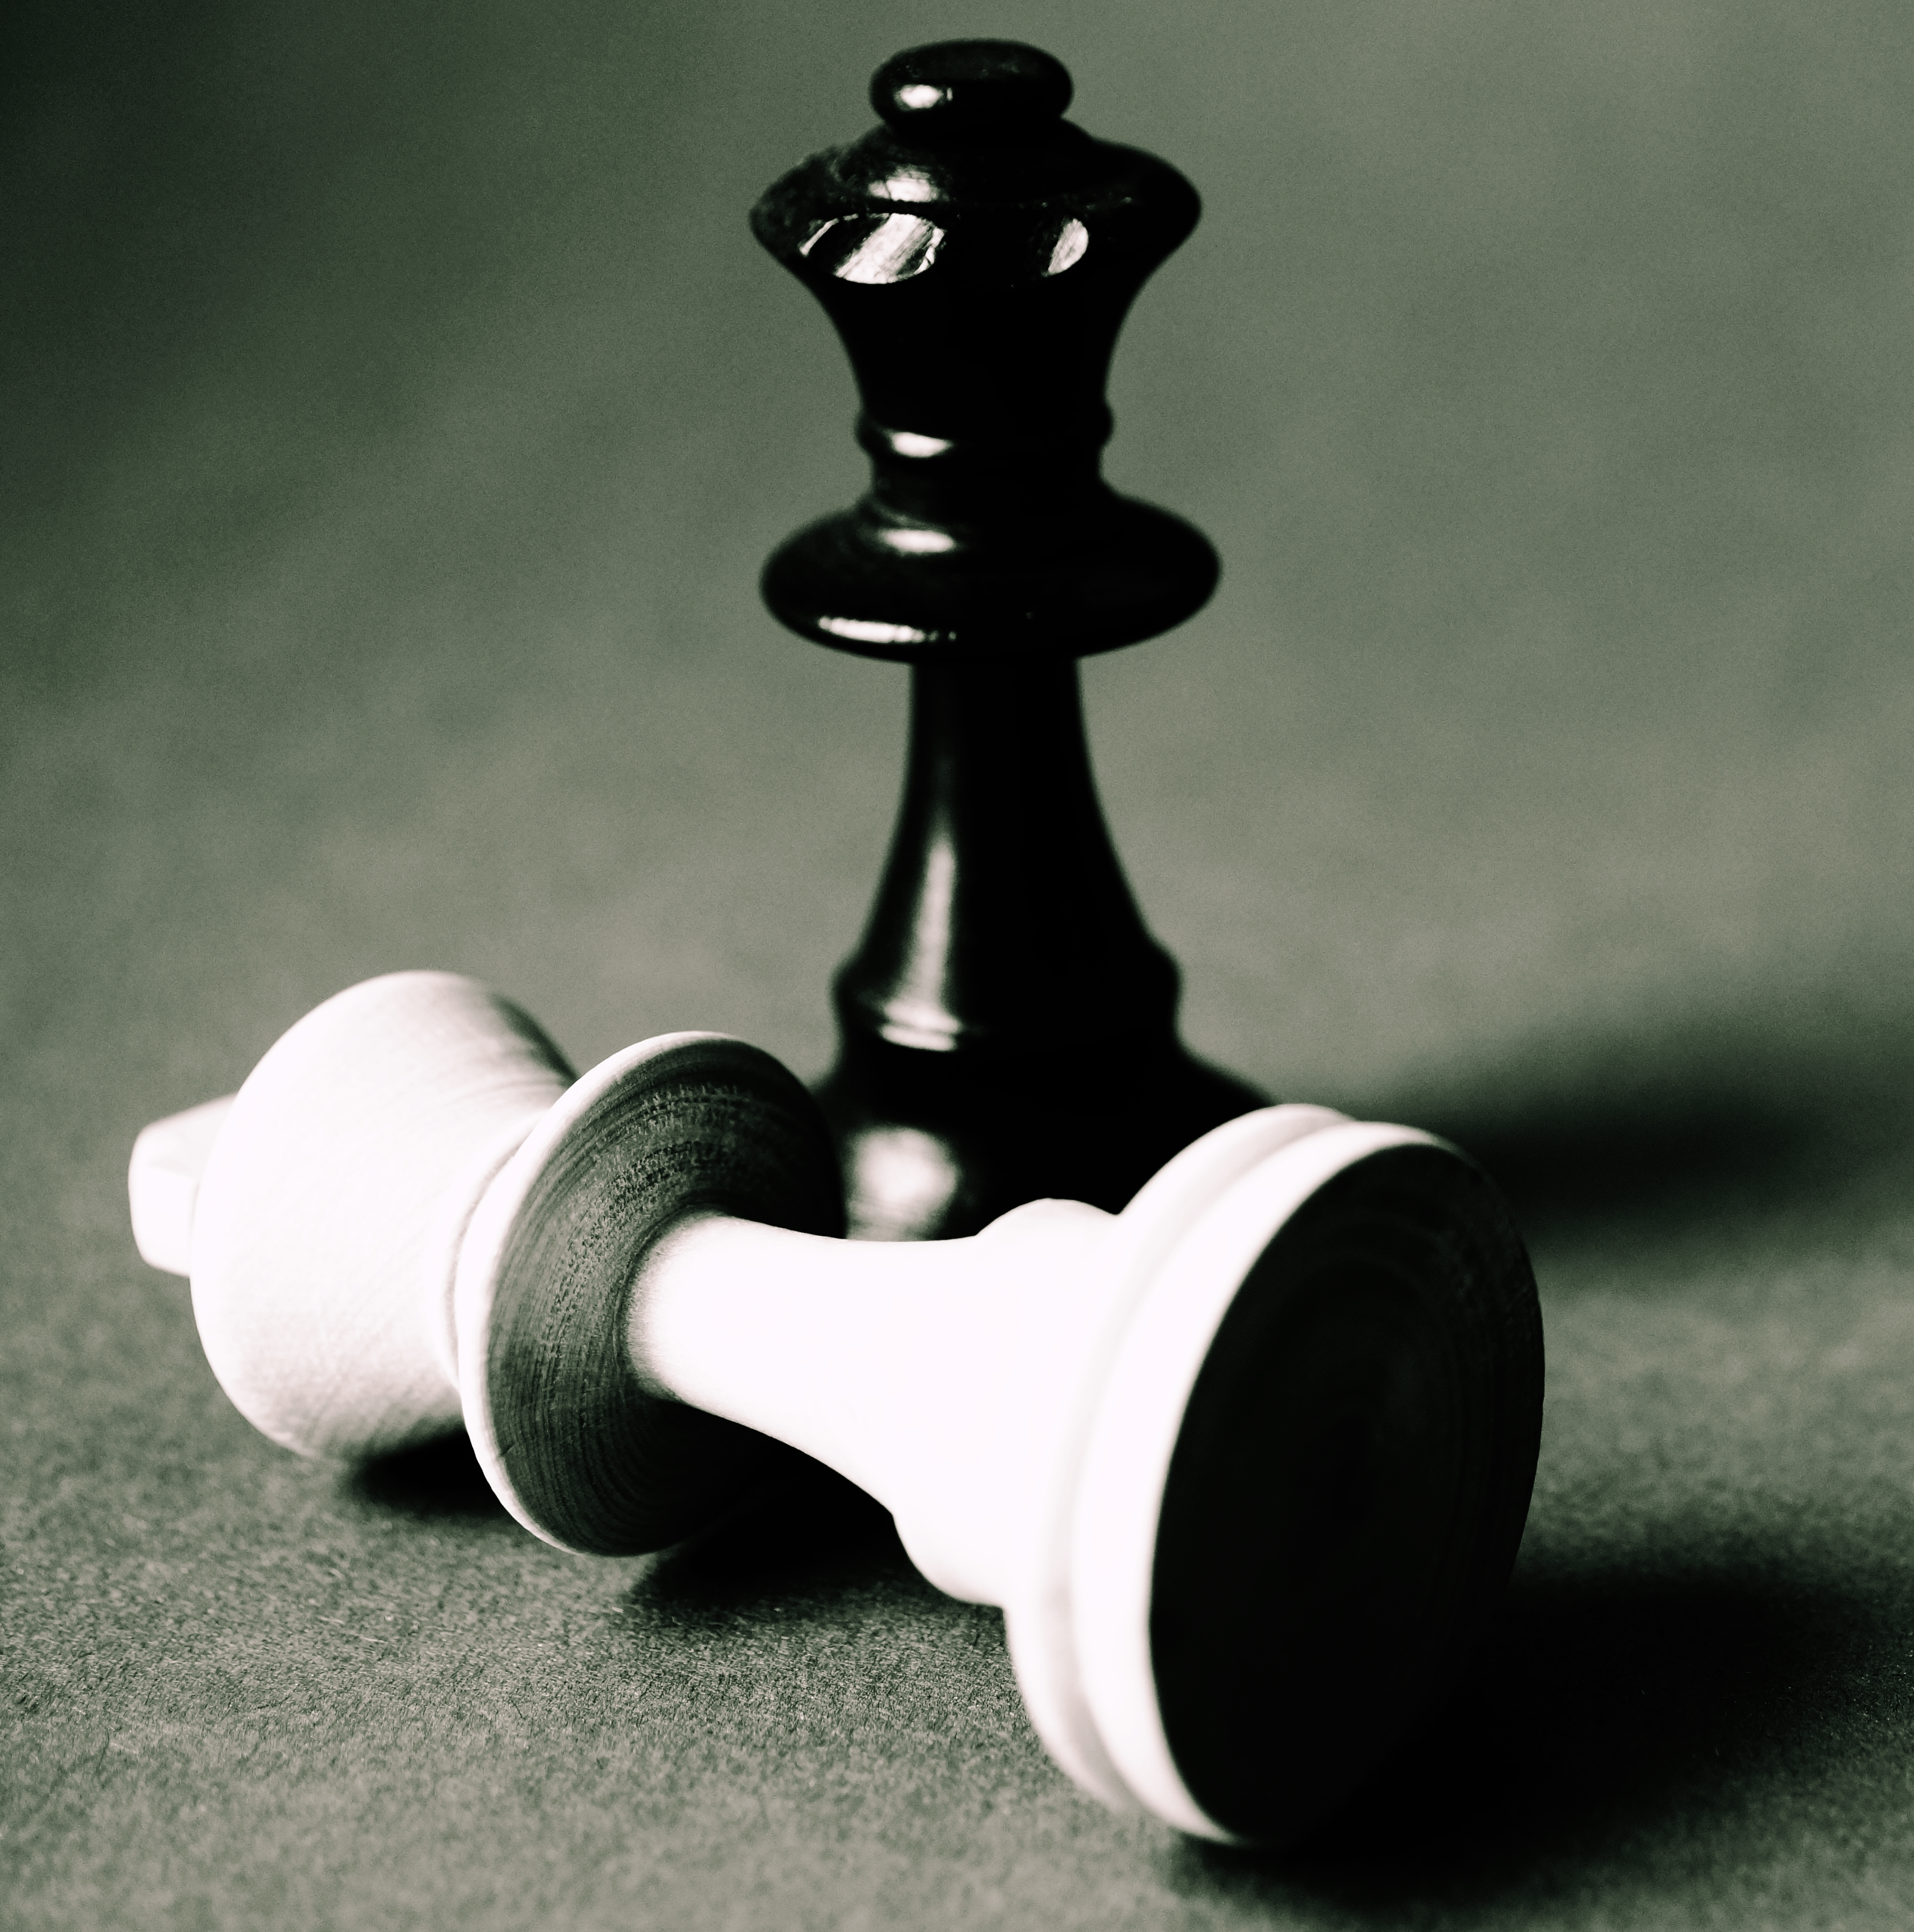 Two Black and White Chess Pieces